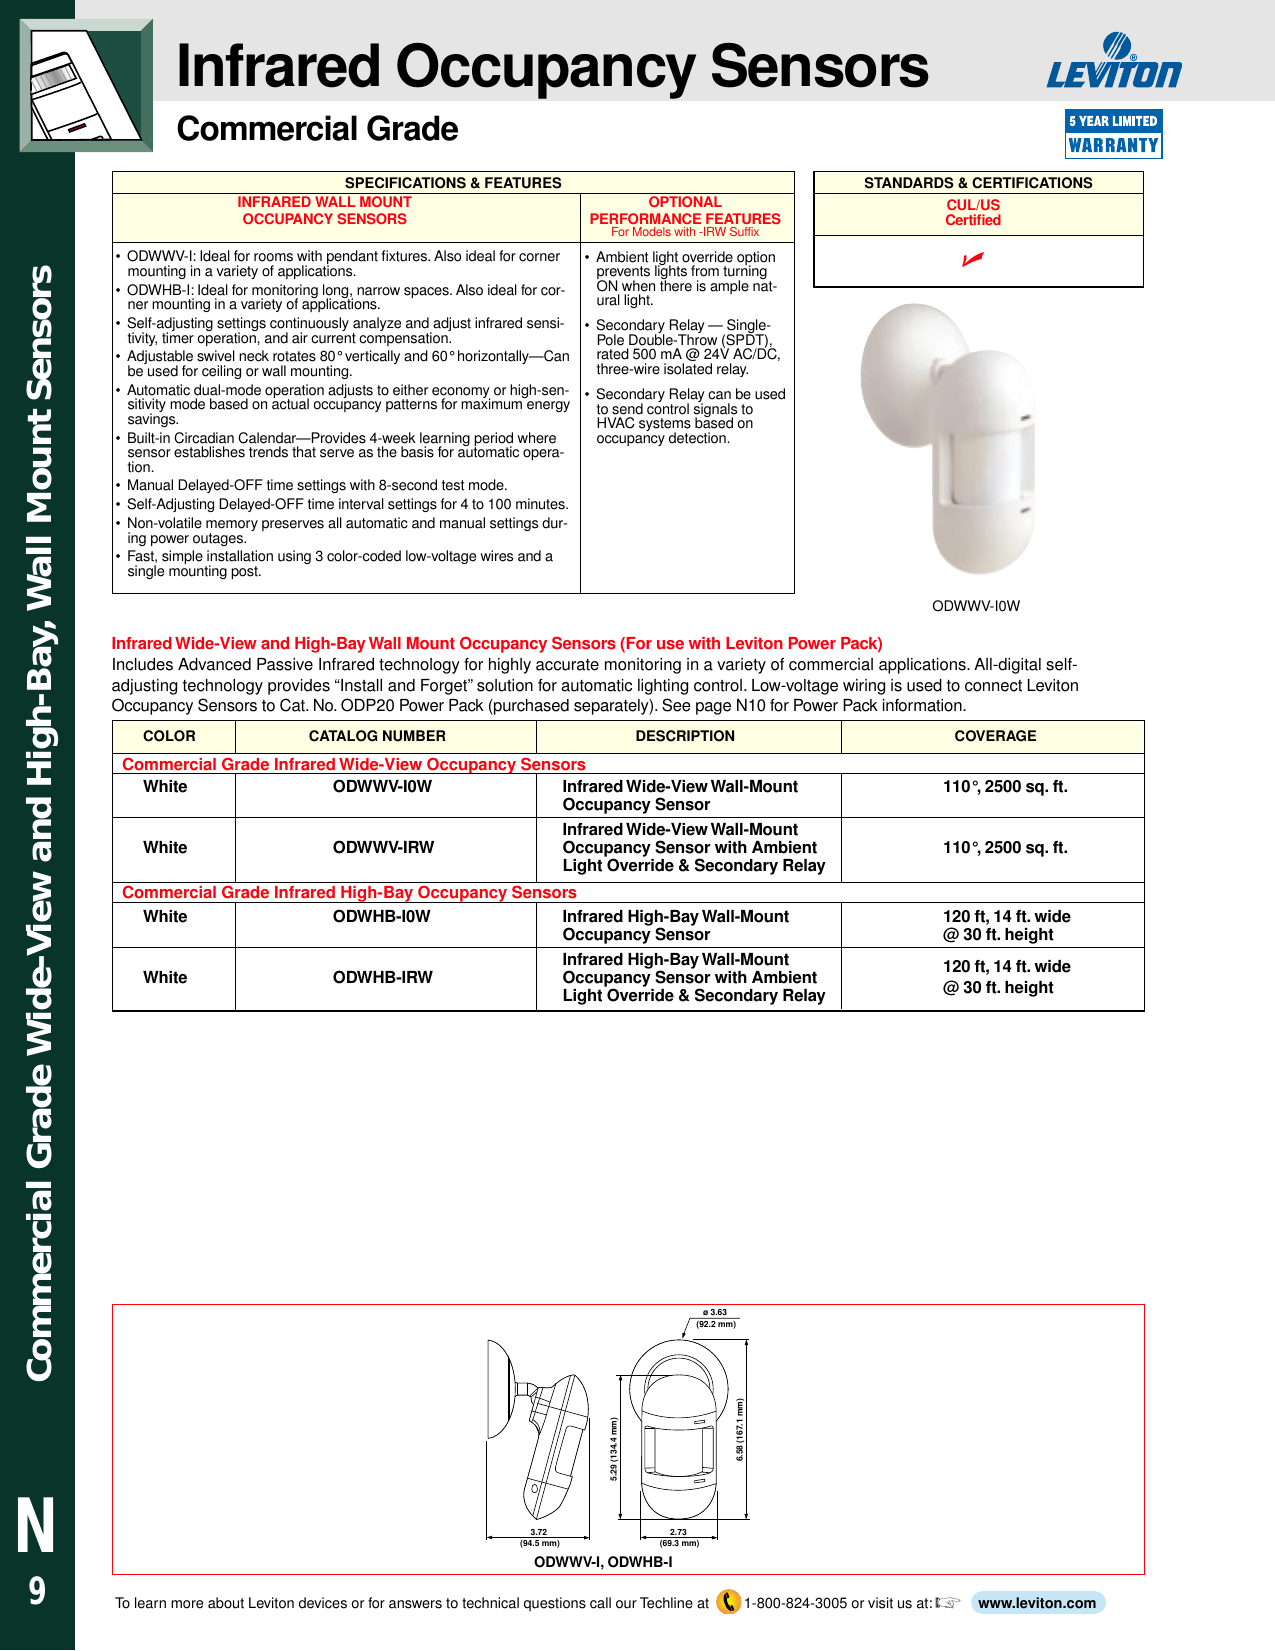 Section N Occupancy Sensors And Lighting Control Products Threewire System Wall Mount Automatic Ir Motion Sensor Light Switch Page 10 Of 12